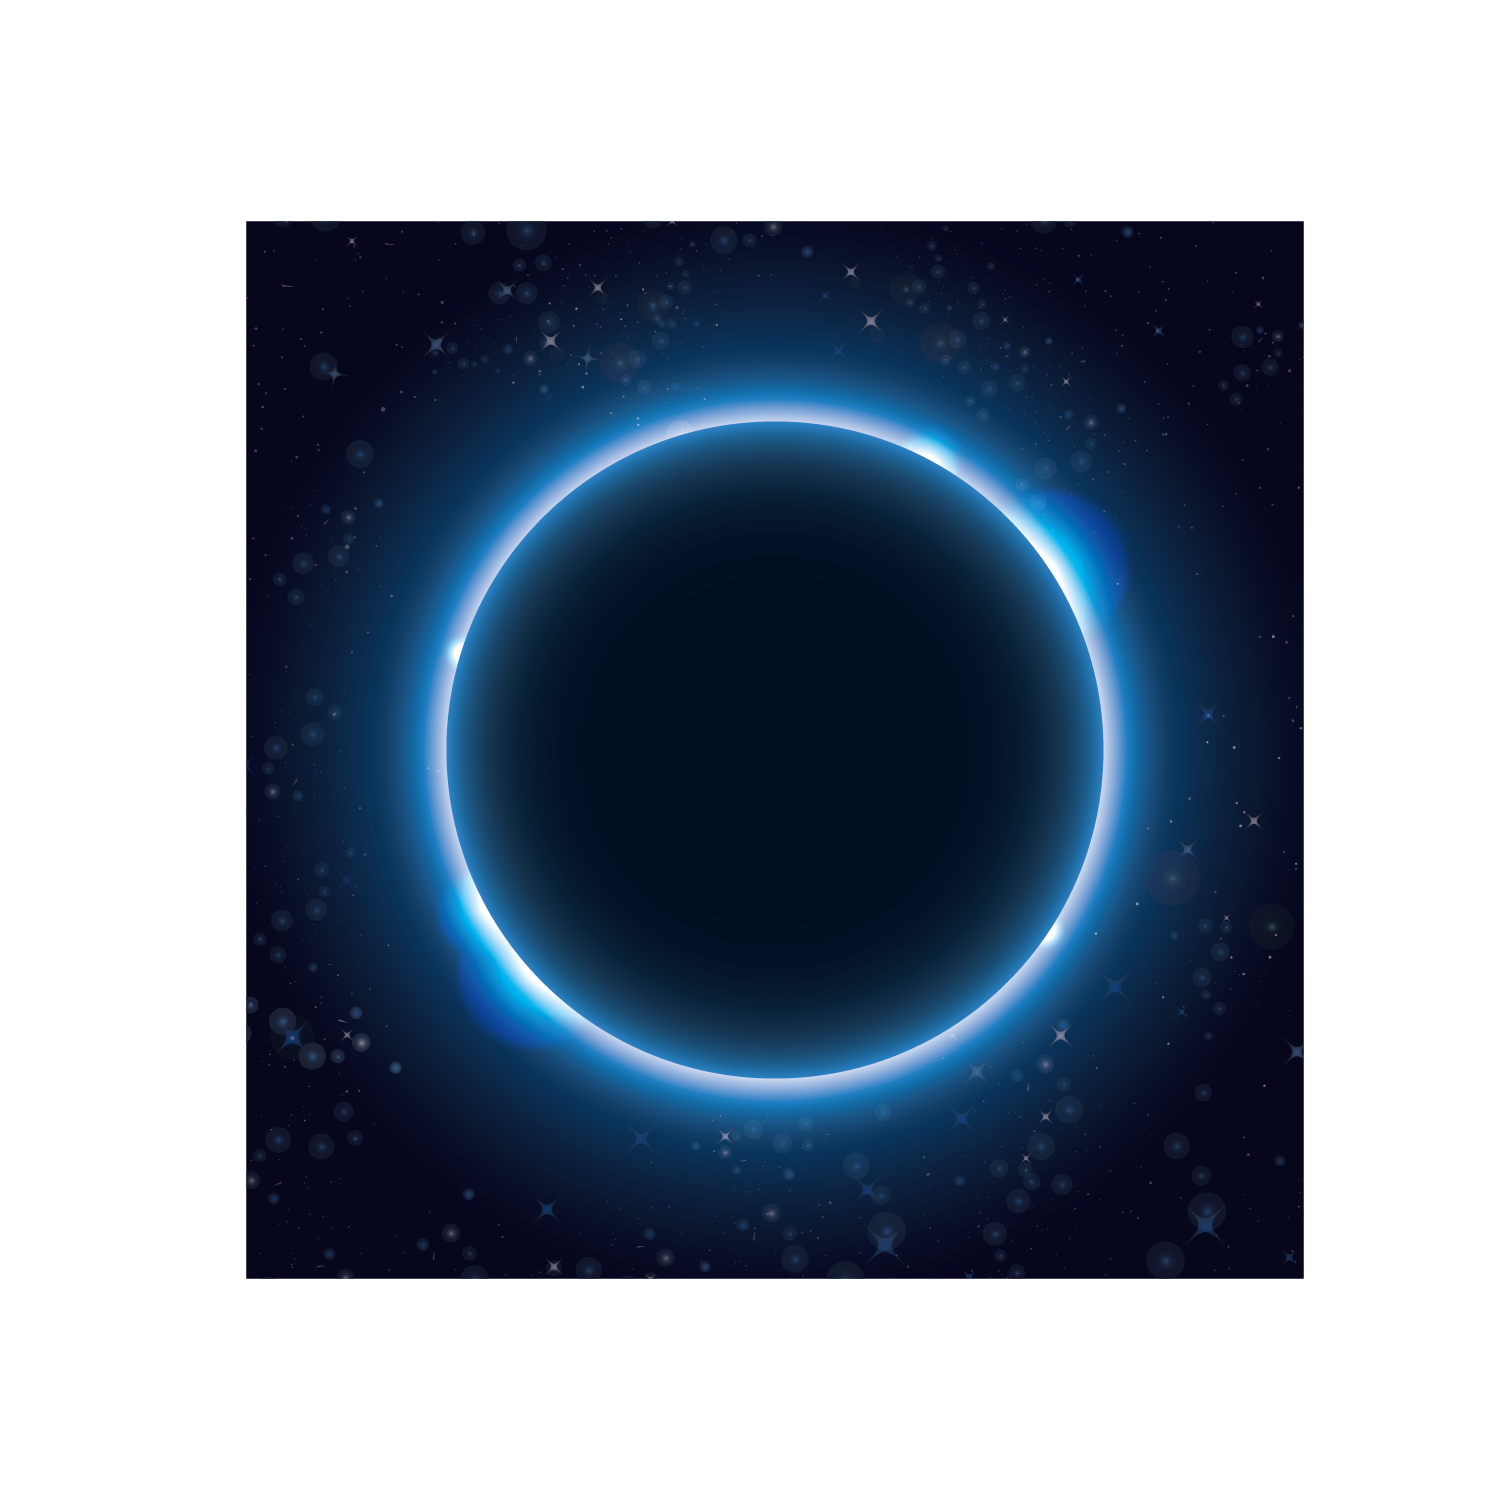 Particle ring png. Planet atmosphere sky wallpaper